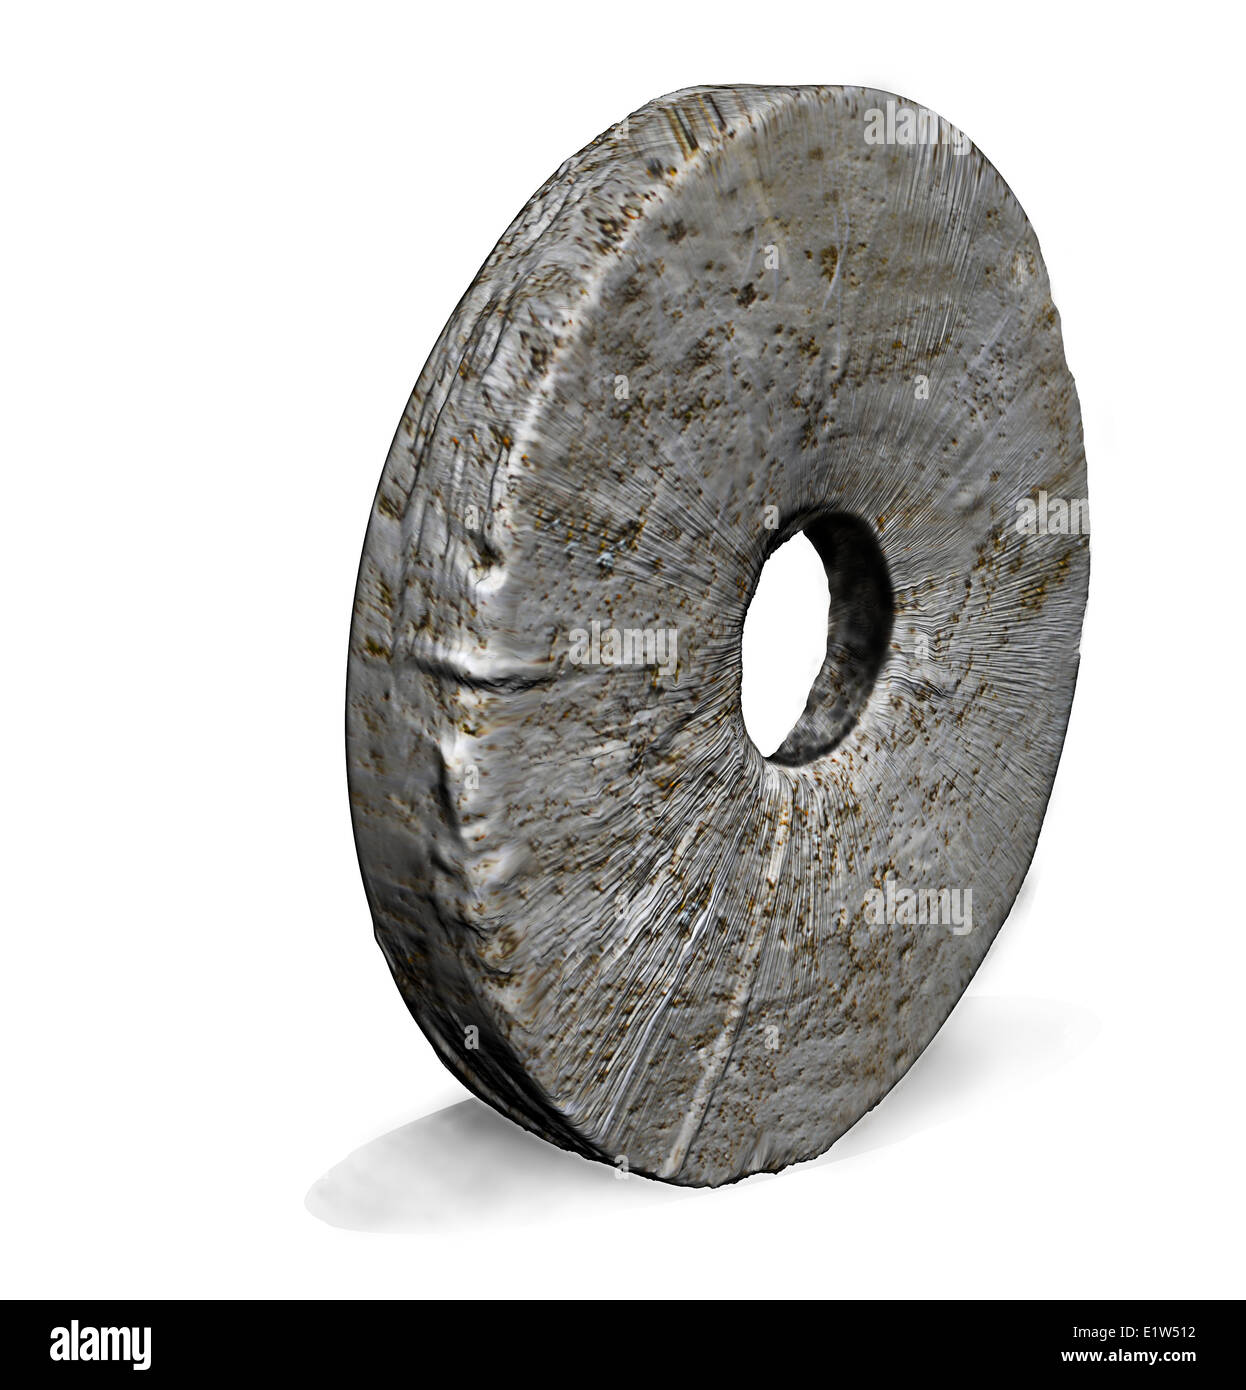 Stone Wheel made in 3d software - Stock Image